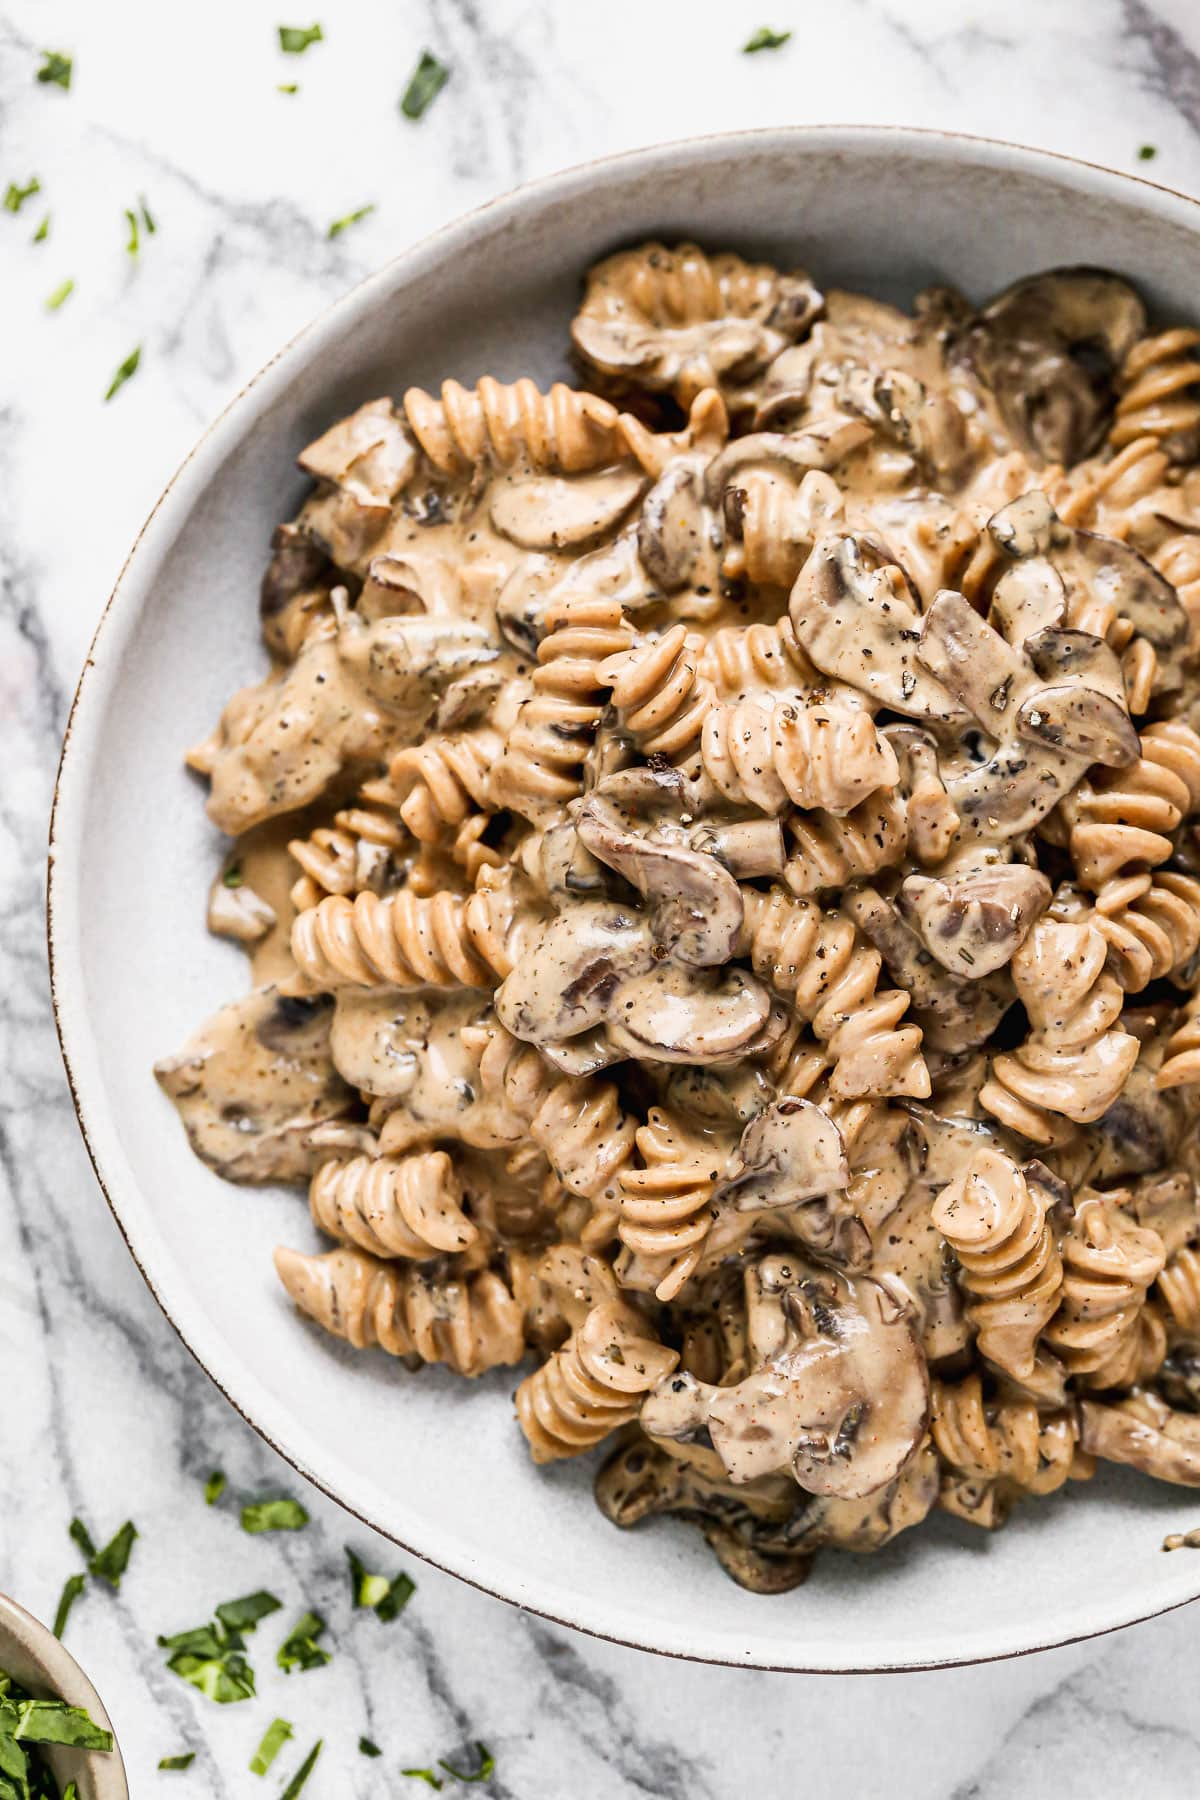 Healthy vegan mushroom stroganoff in a bowl